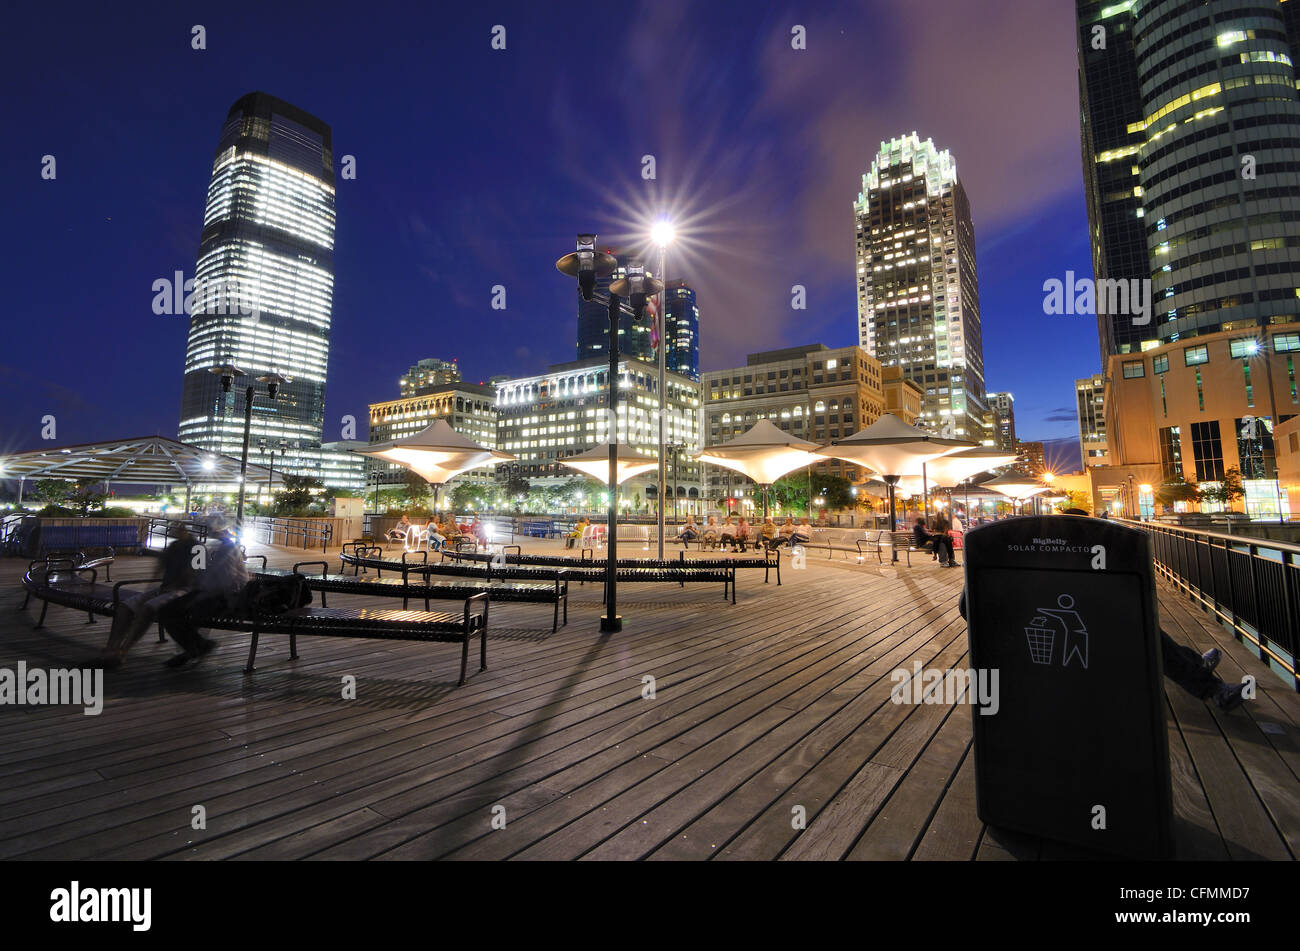 Pier at Exchange Place in Jersey City, New Jersey, USA. - Stock Image